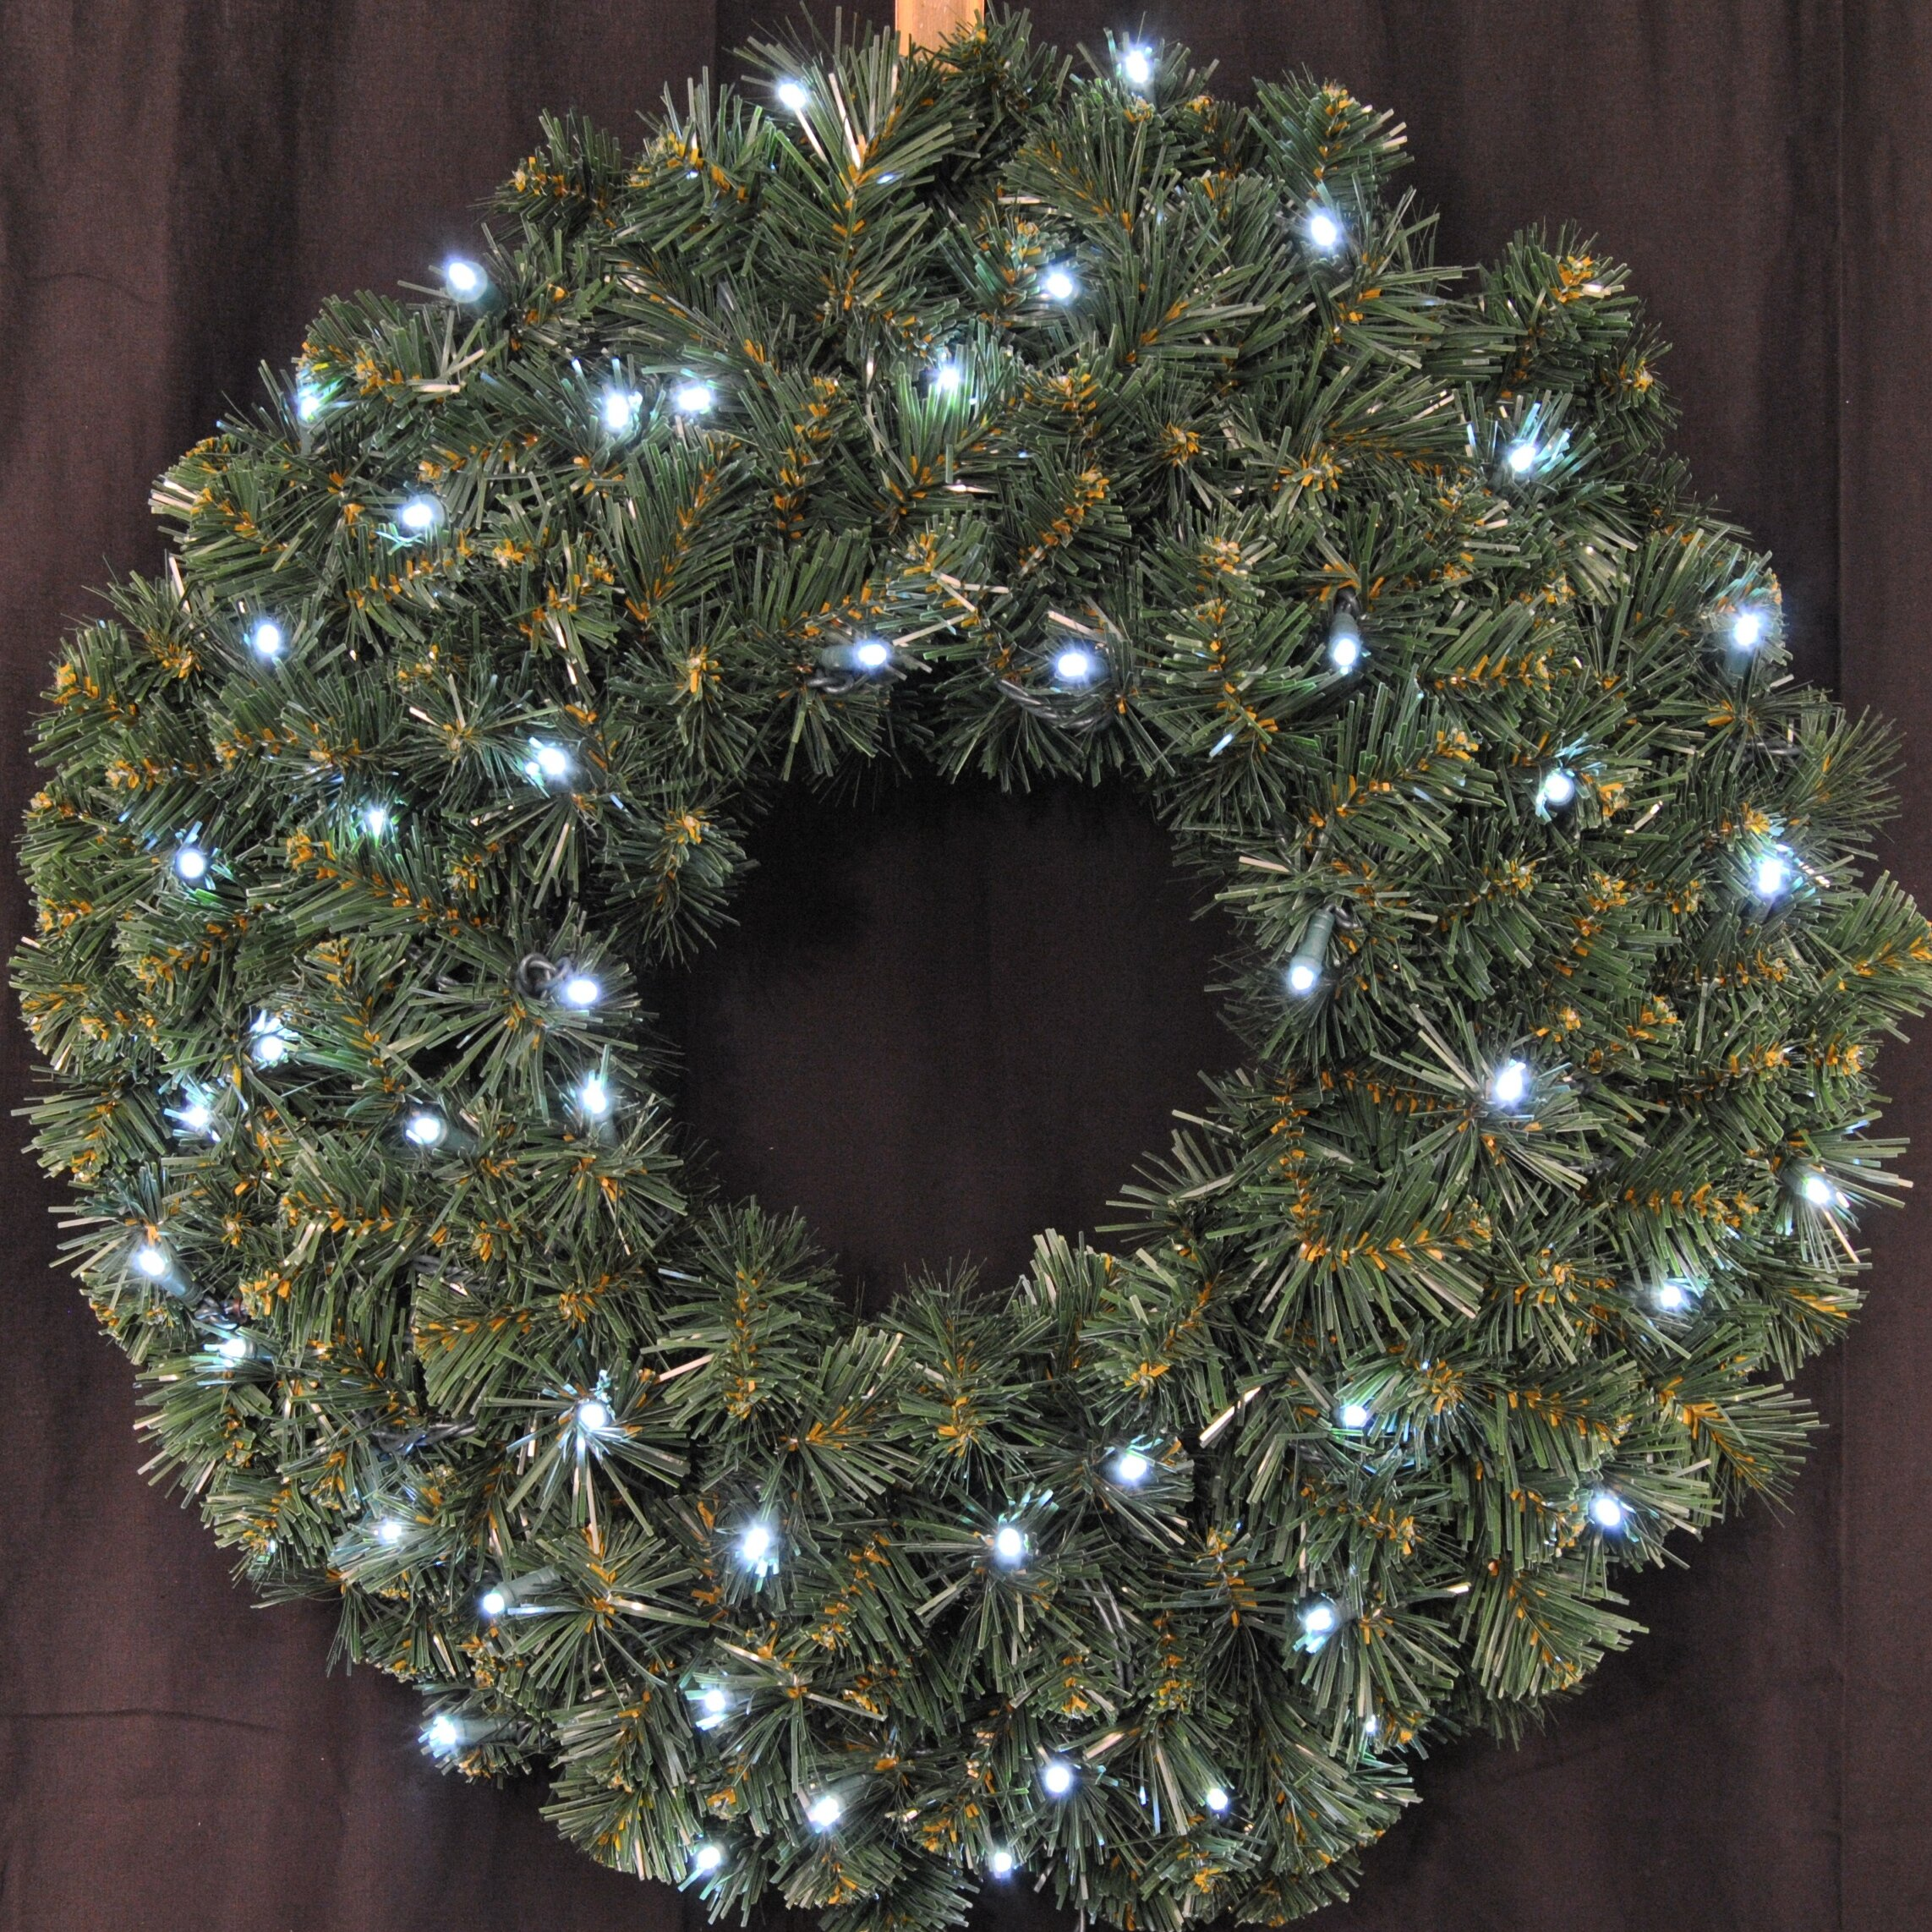 Queens Of Christmas Pre Lit Battery Operated Led Sequoia Wreath Reviews Wayfair